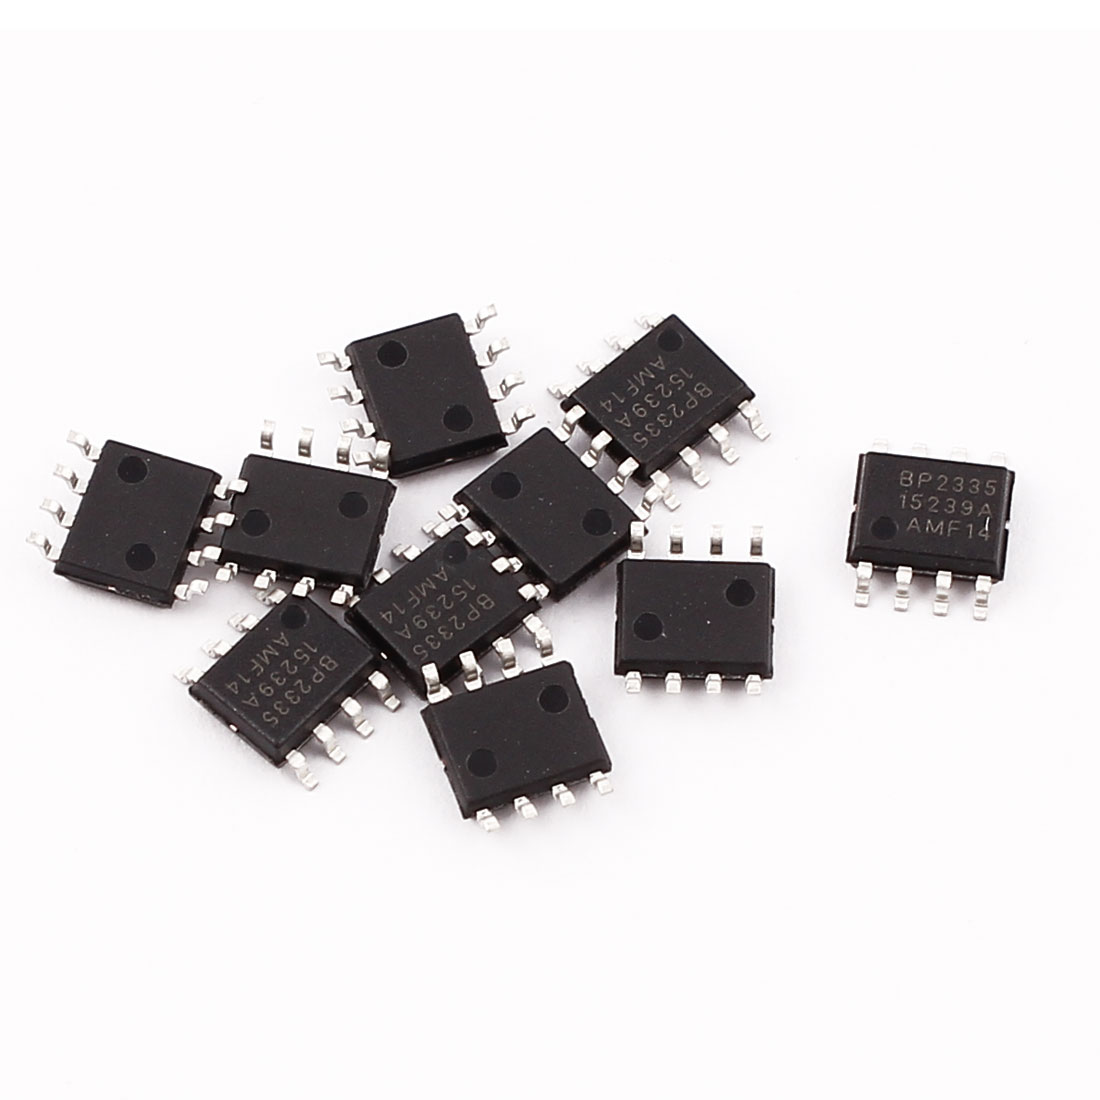 10Pcs BP2335 SOP-8 SMD SMT Type PCB Surface Mount LED Driver Circuit Module Integrated Circuit IC Chip